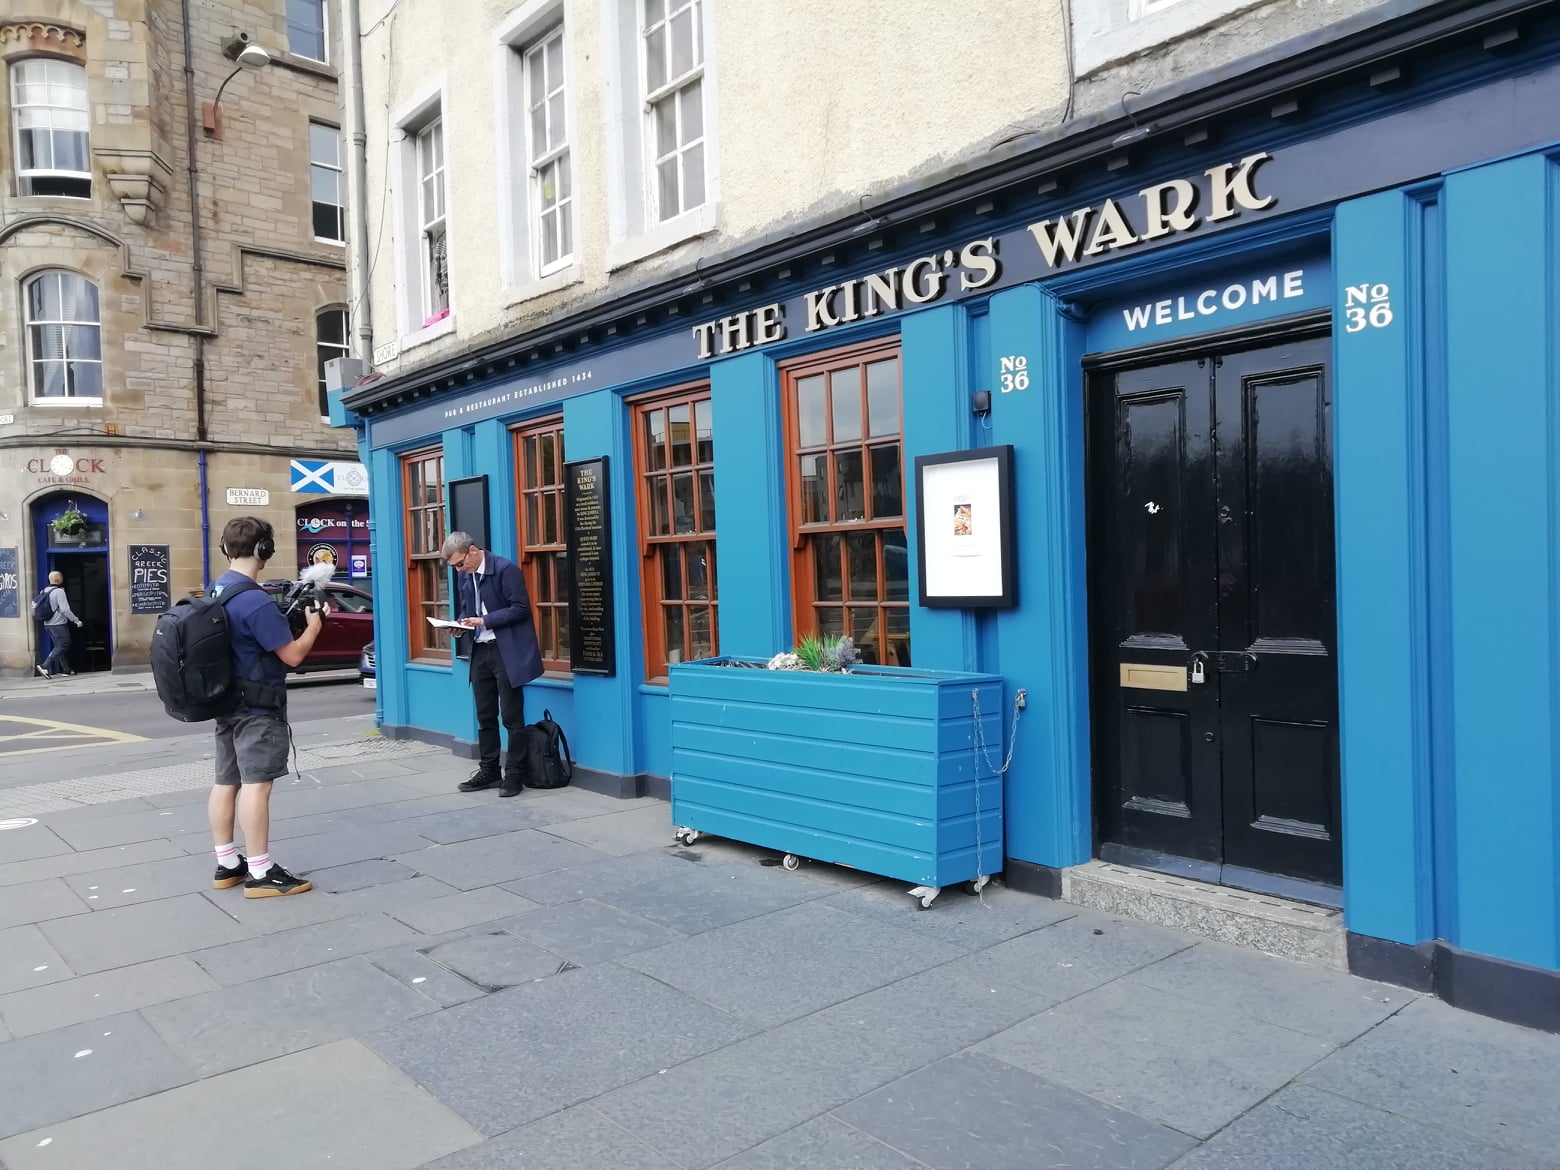 The King's Wark, The Shore, Leith